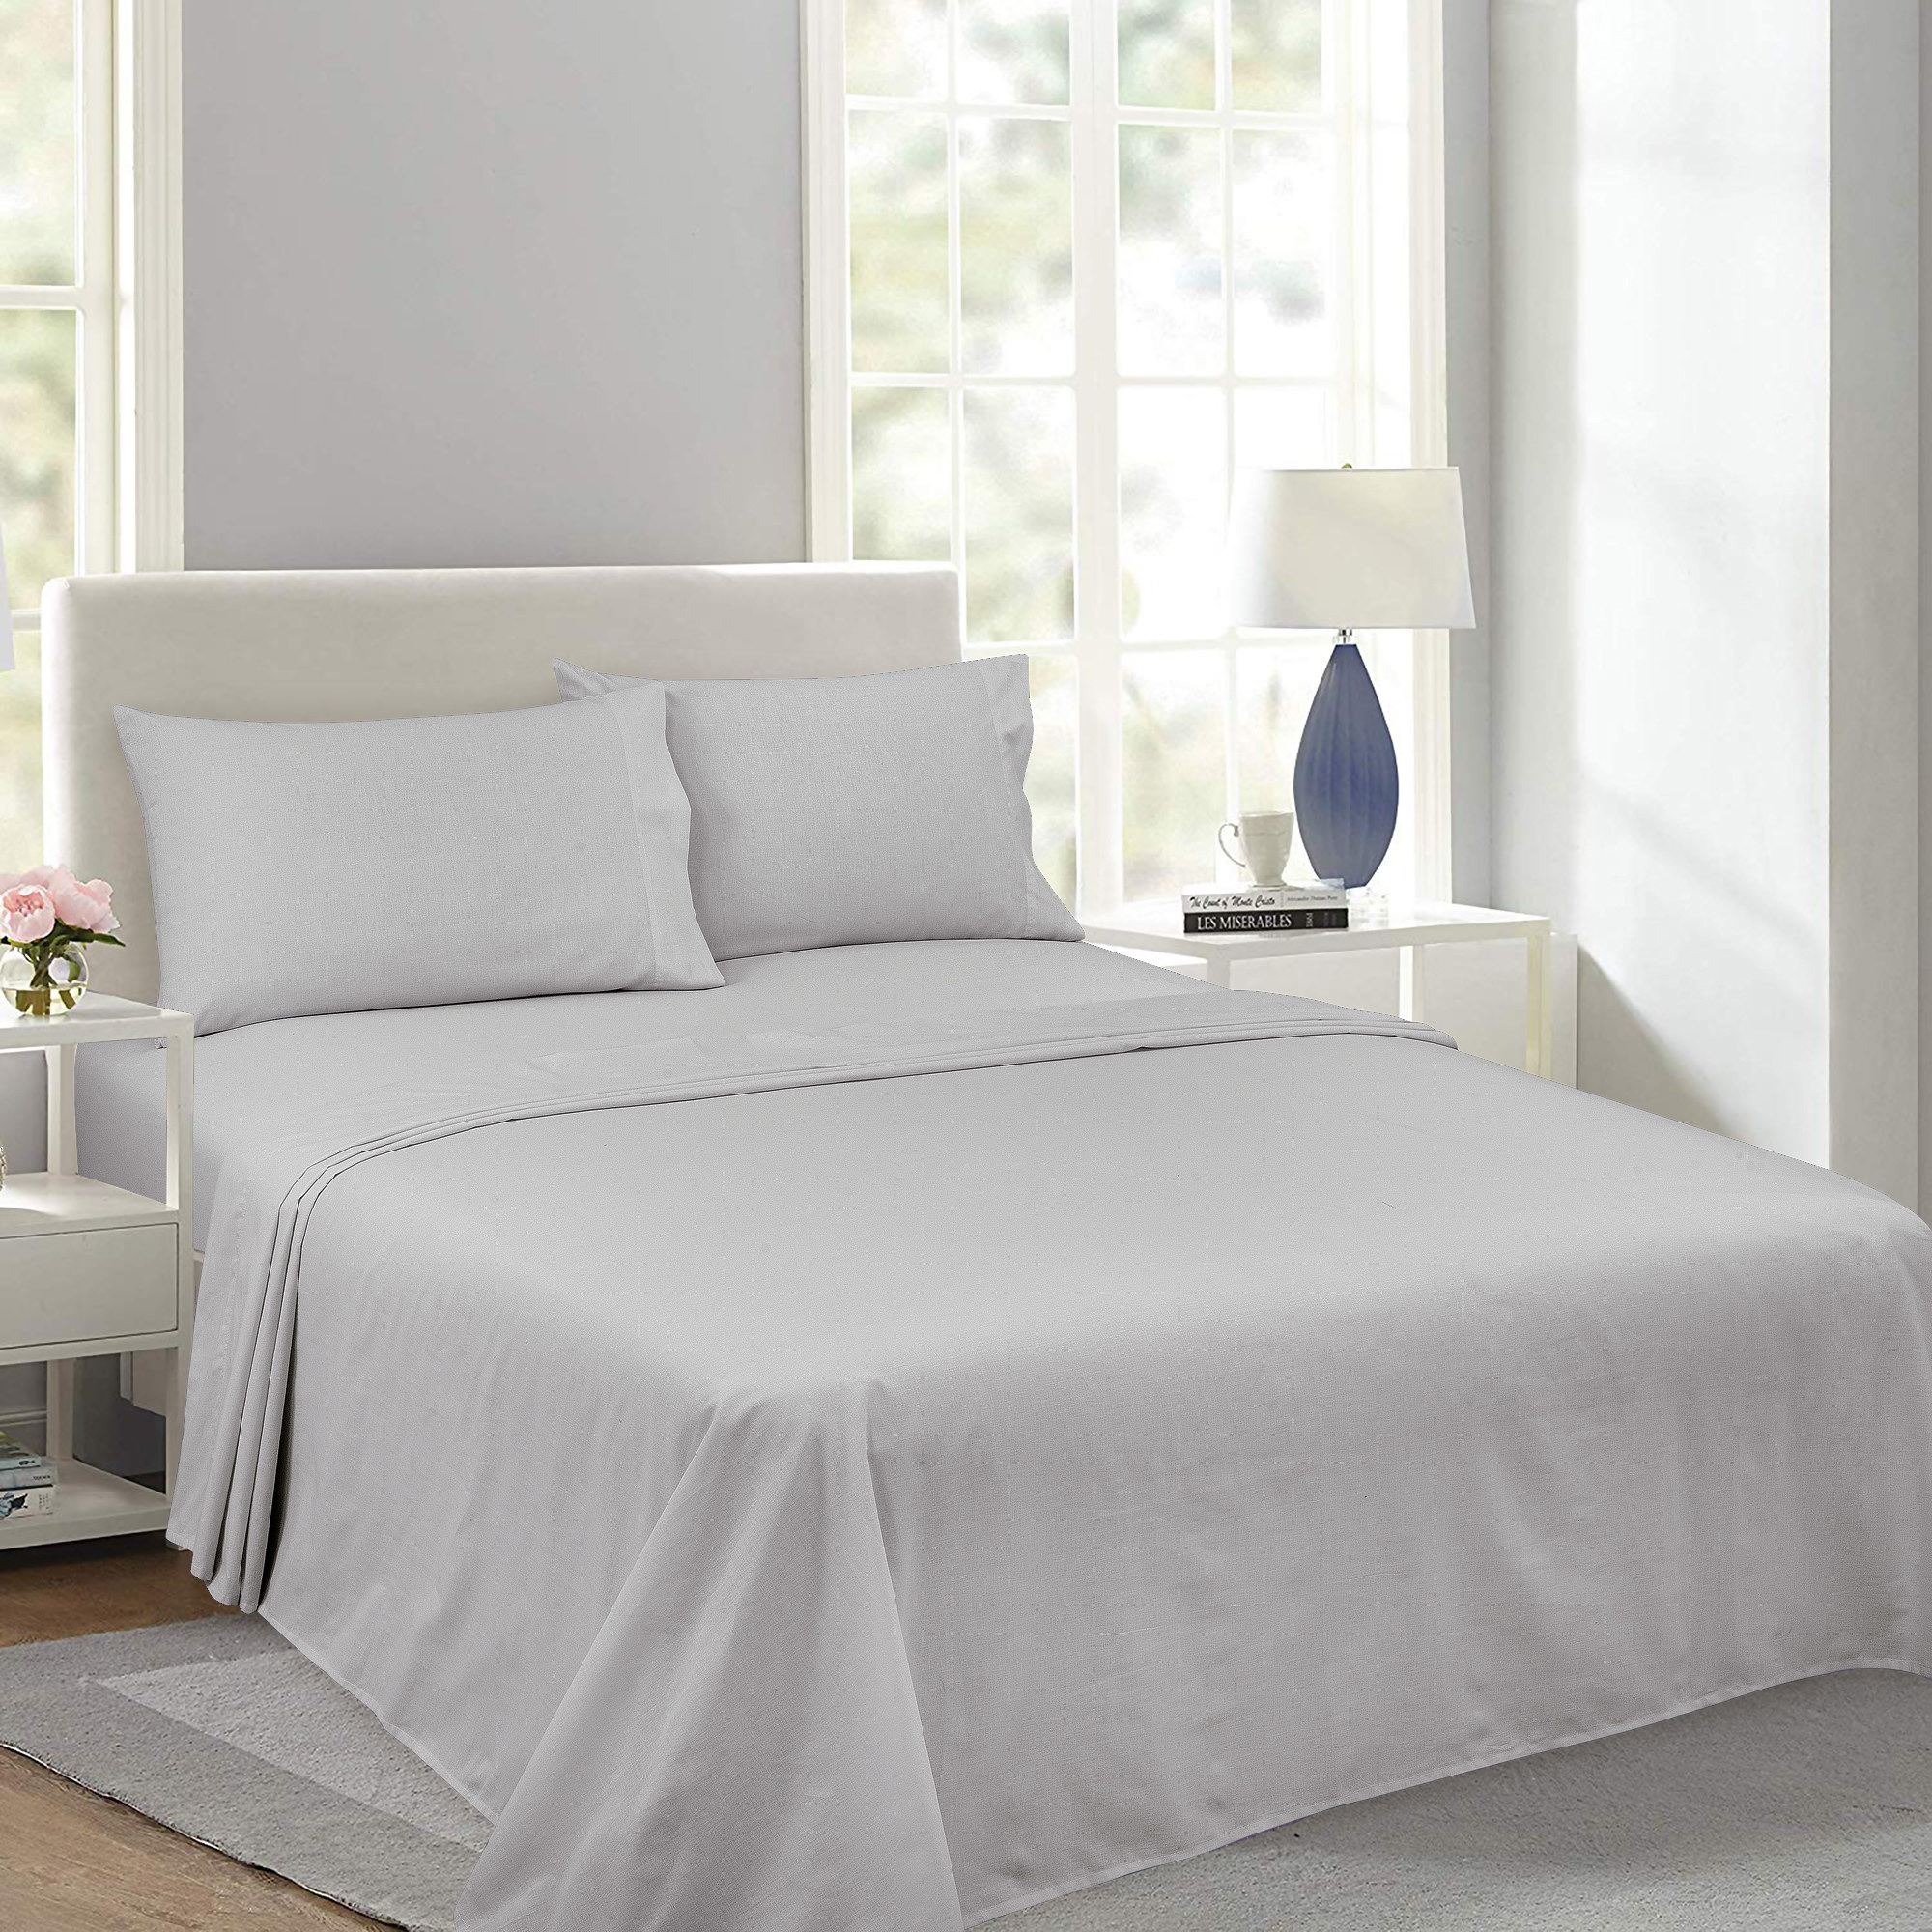 A grey sheet set in a home